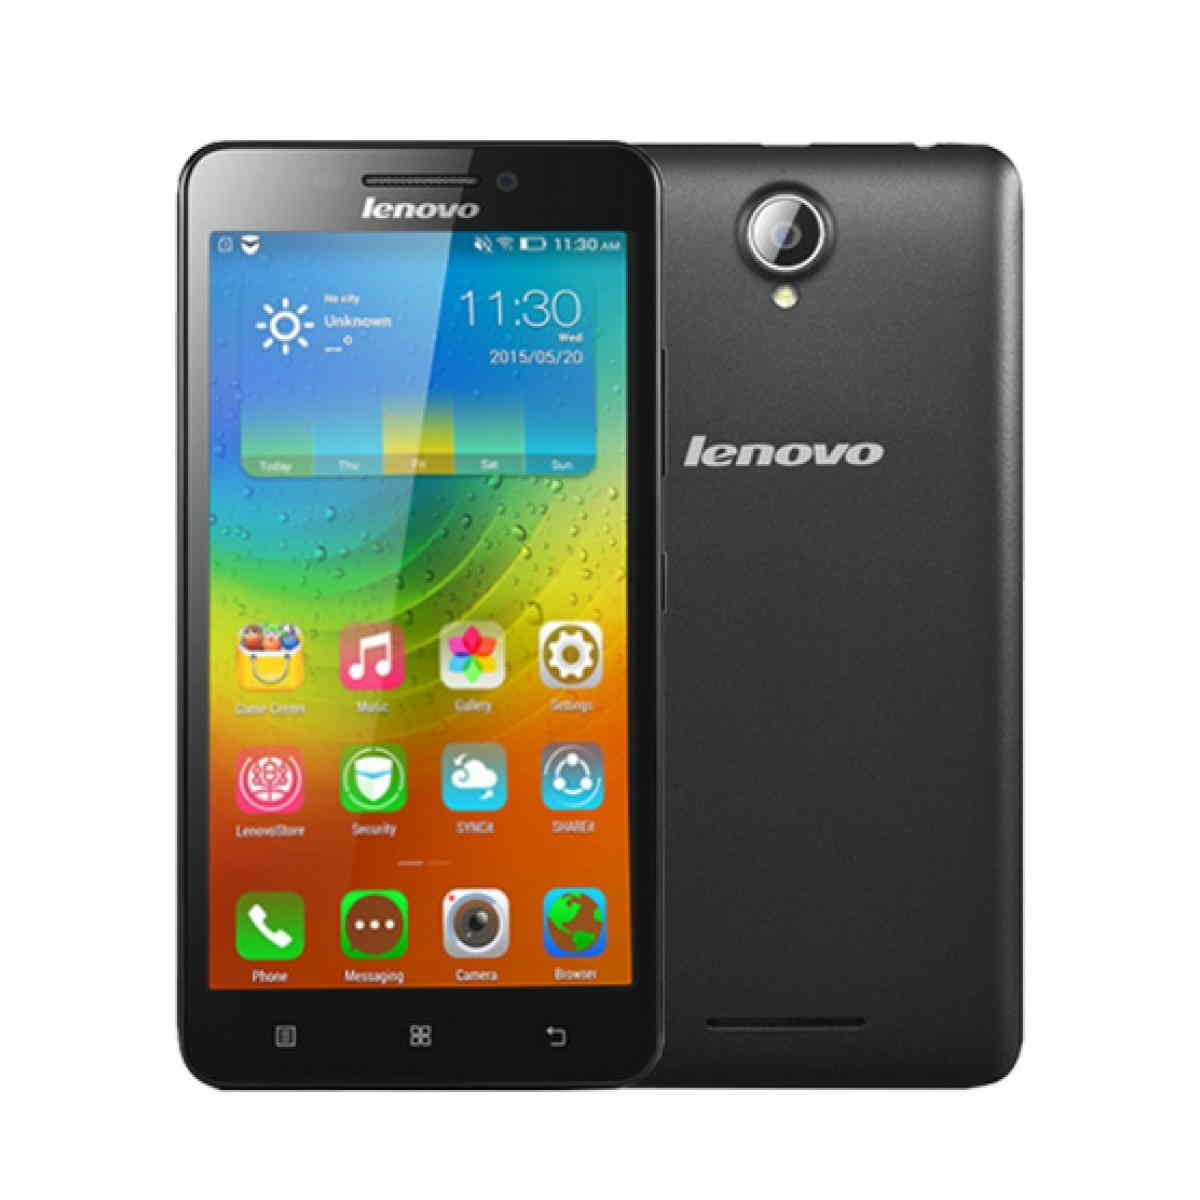 Review of the smartphone Lenovo A5000. Specifications and reviews